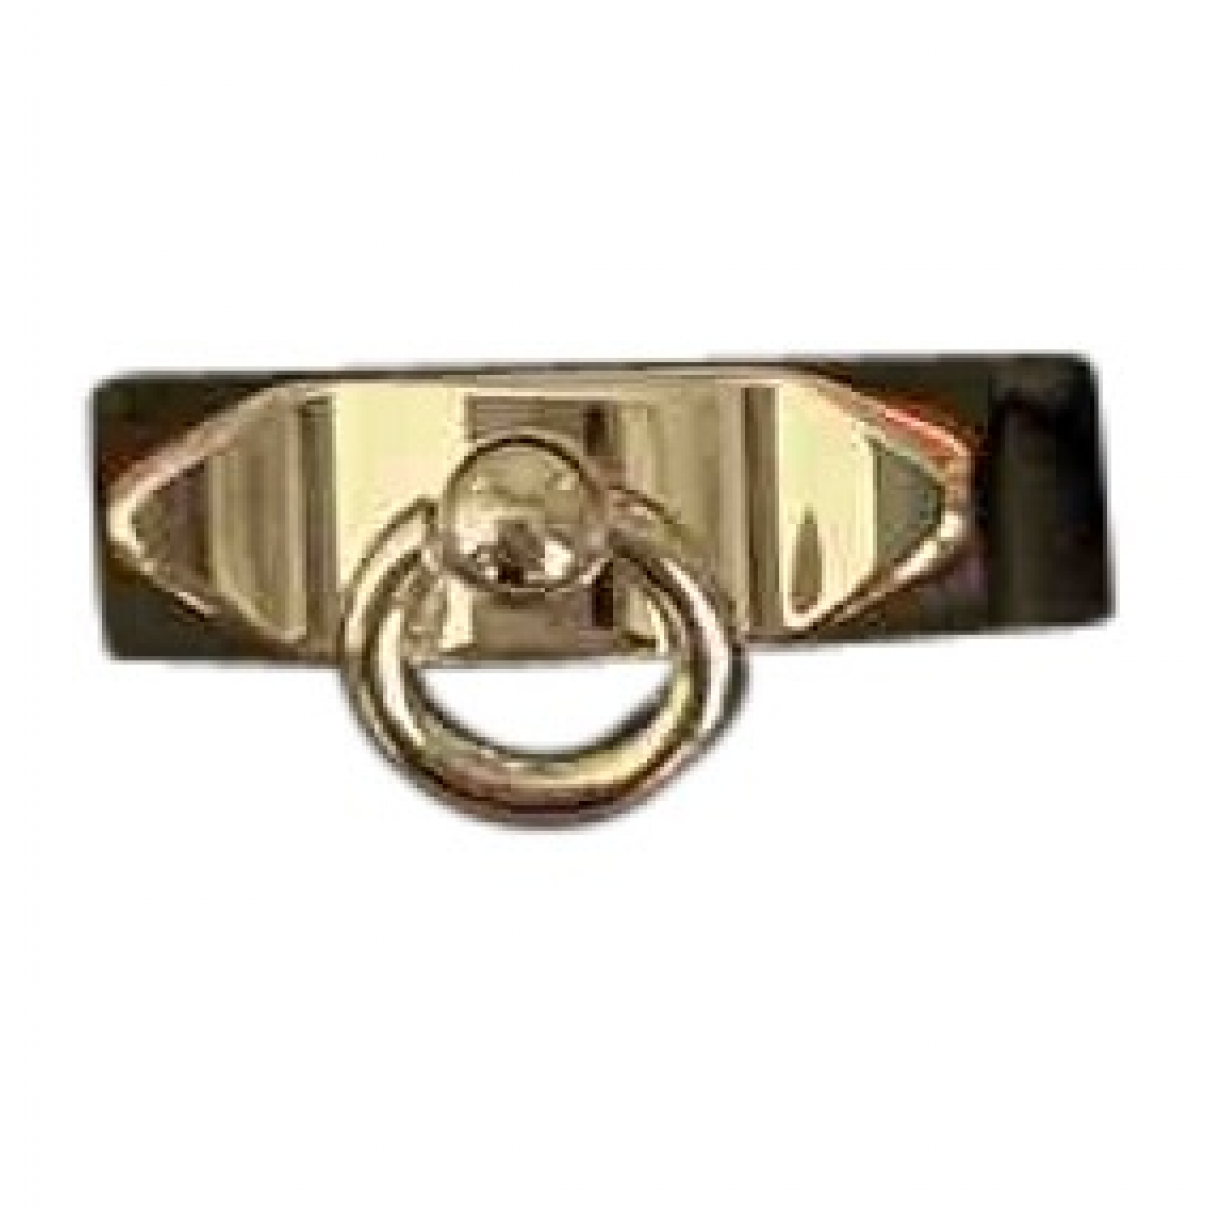 Hermes Collier de chien  Ring in  Silber Silber